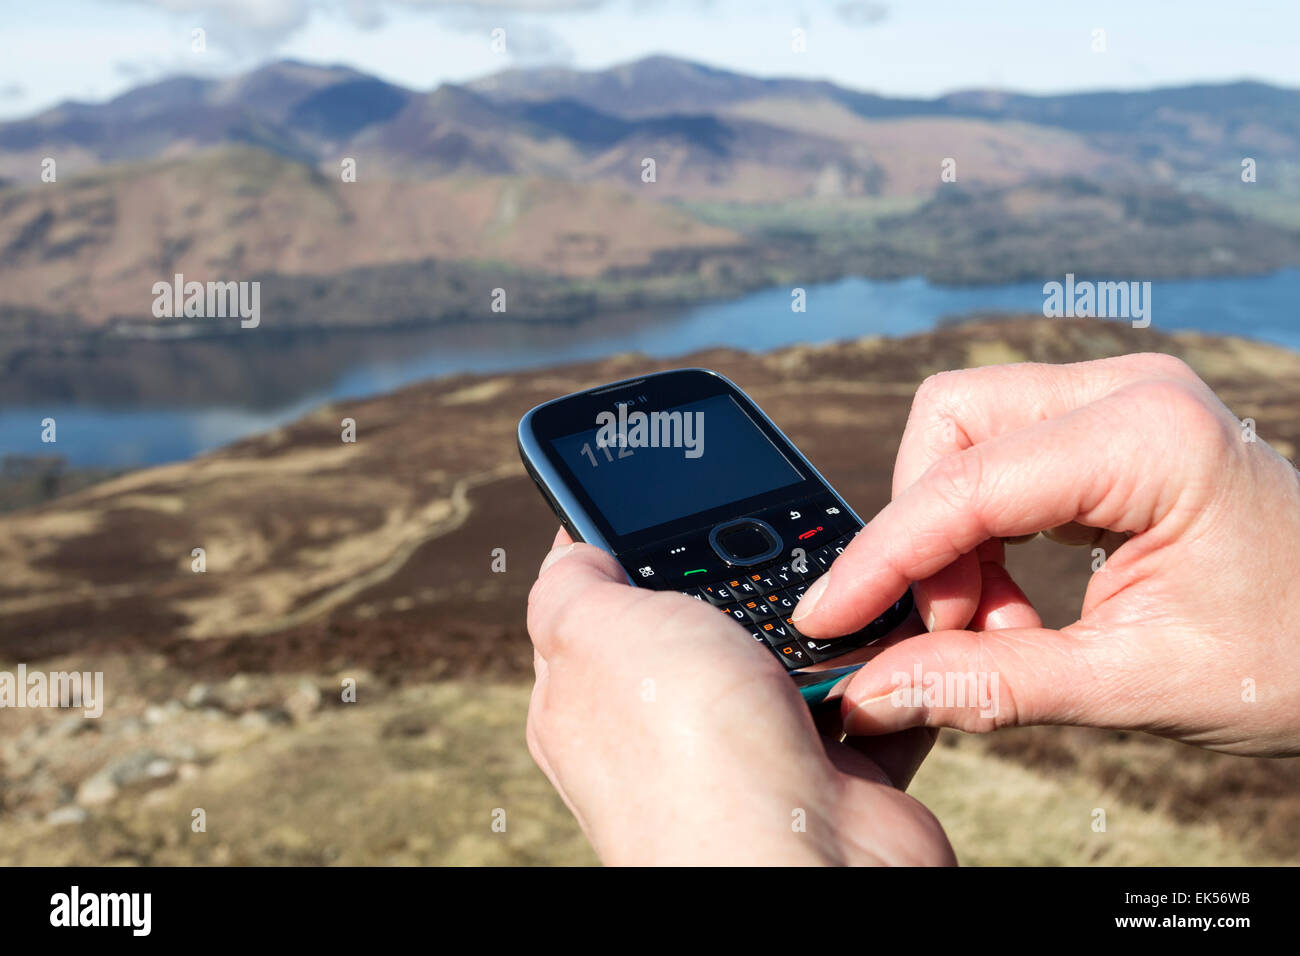 Concept Image of Mobile Phone Being Used to Dial 112 in the Mountains of the Lake District Cumbria UK - Stock Image